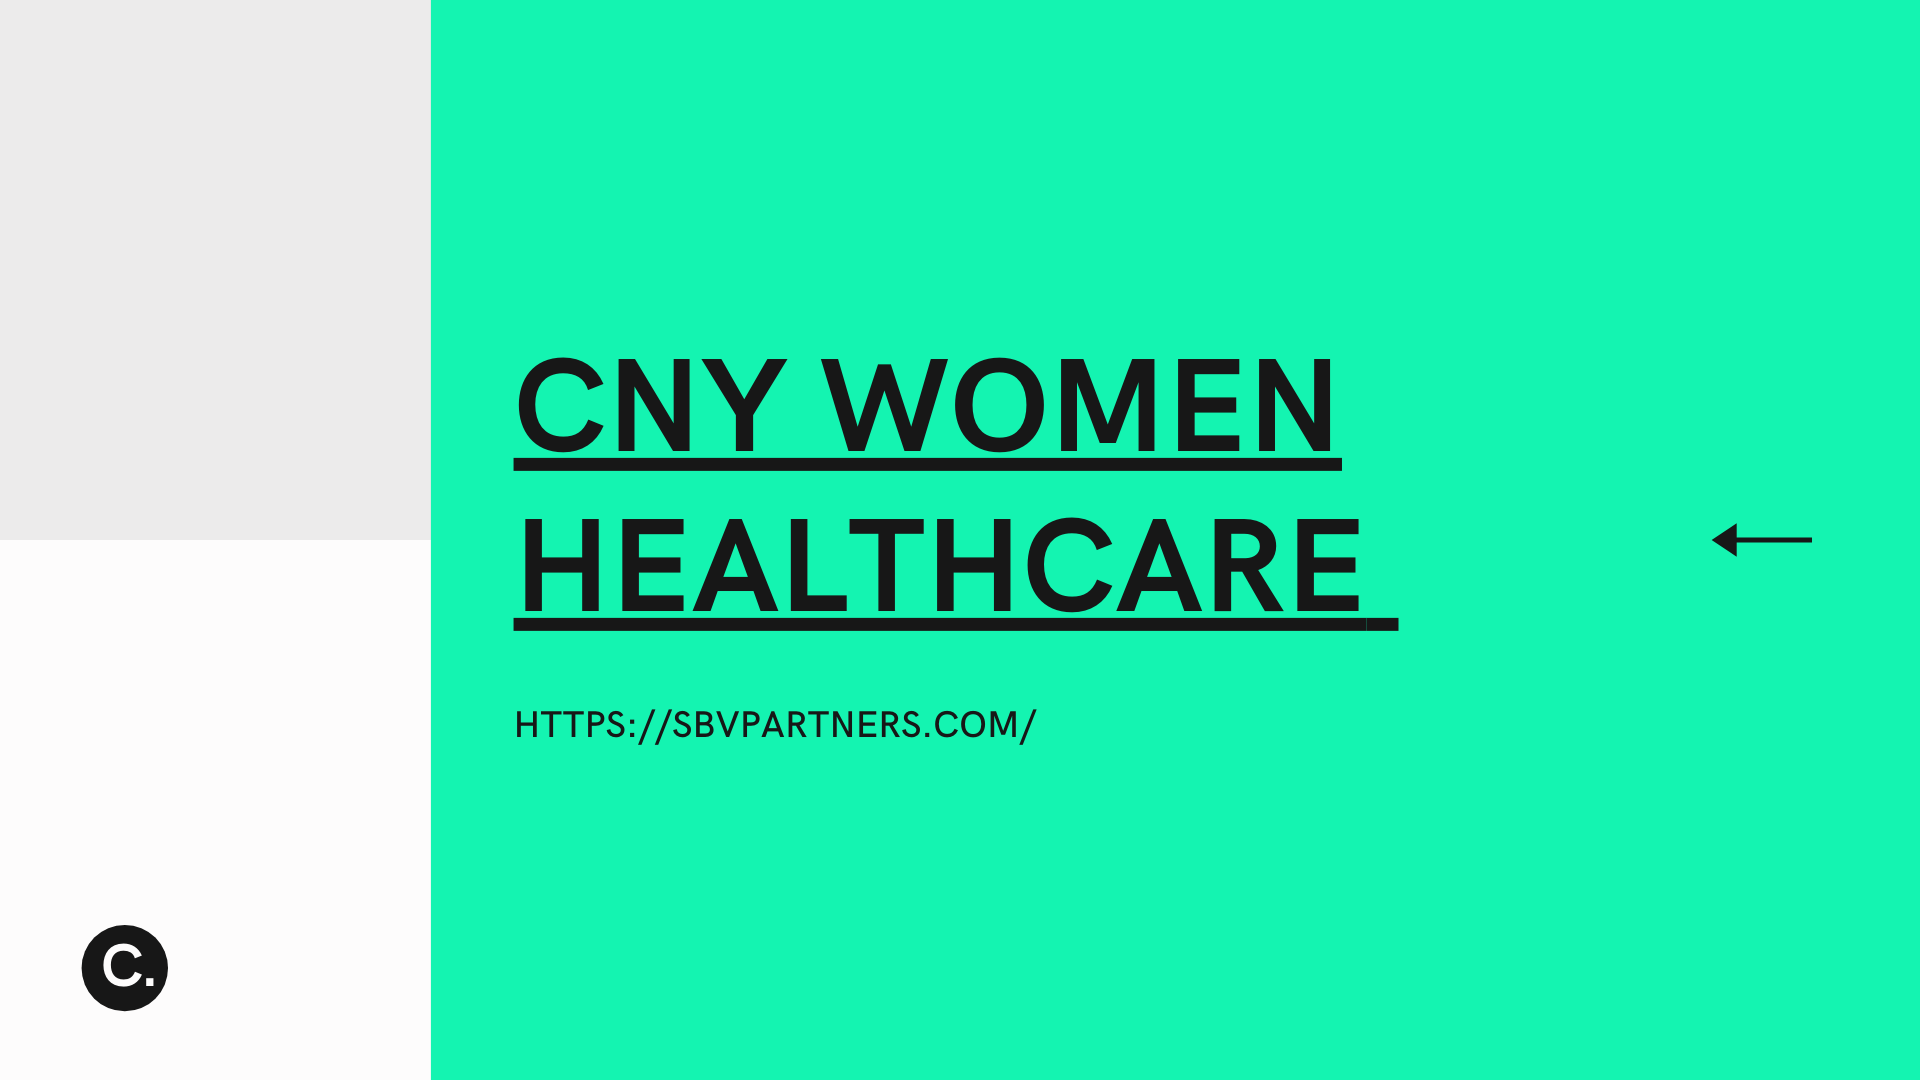 CNY WOMEN HEALTHCARE